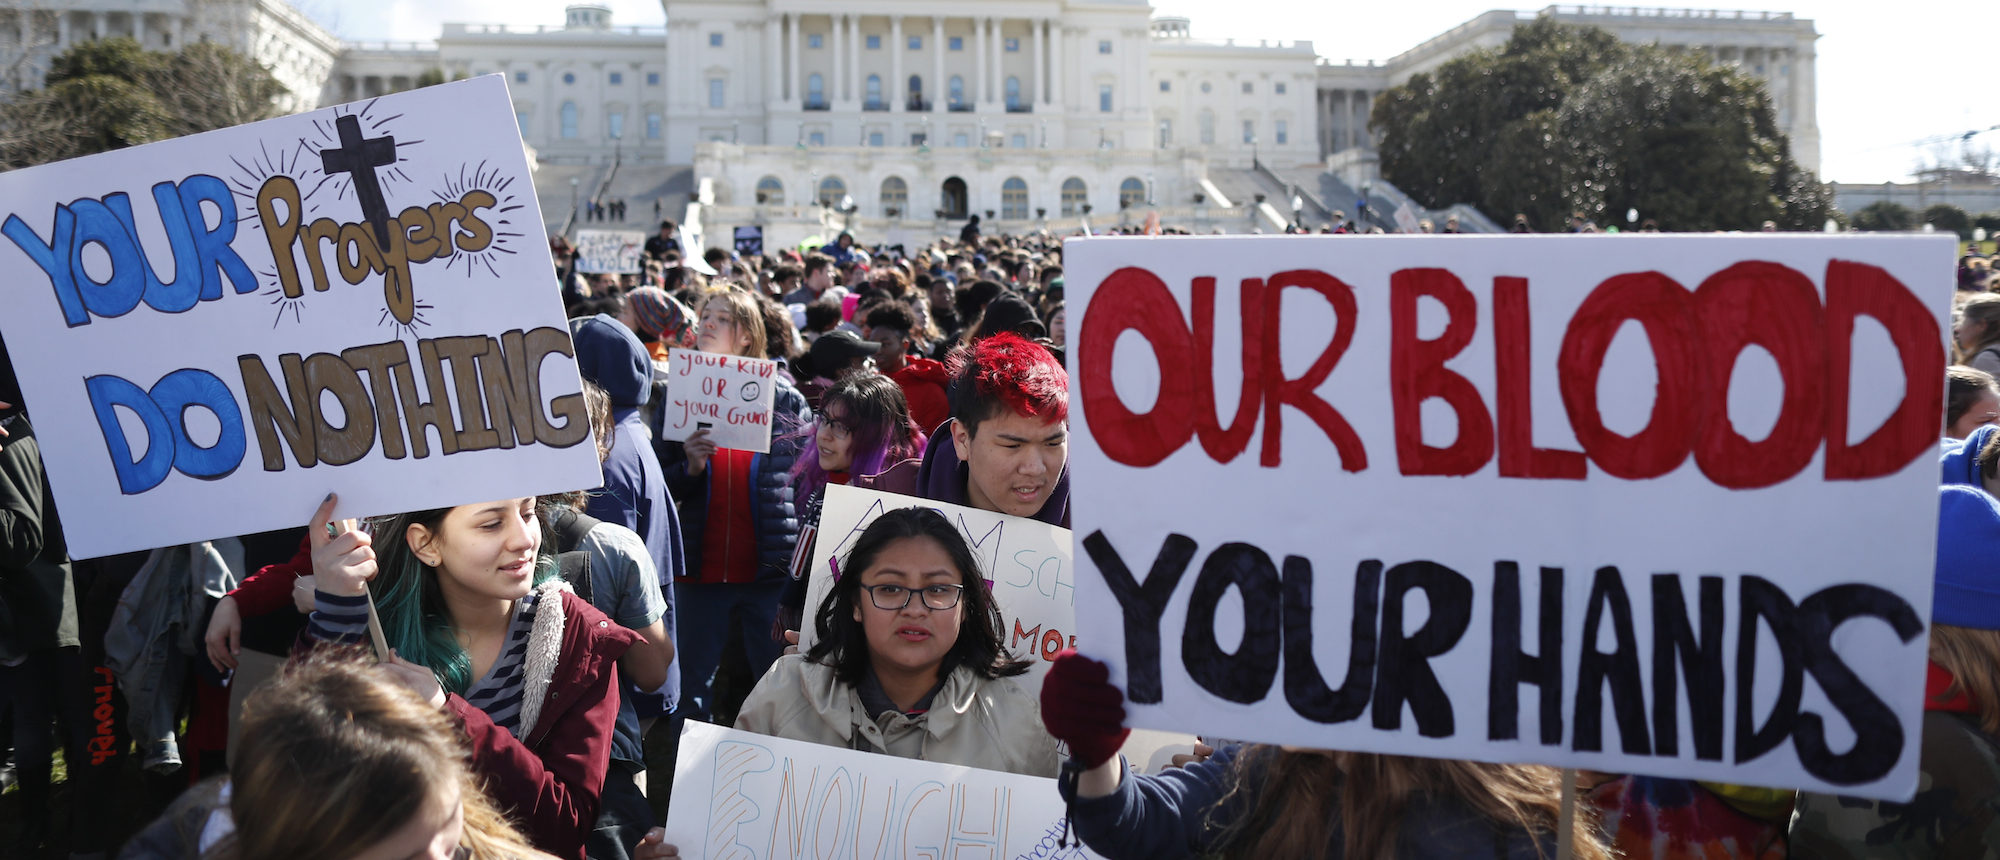 Washington, DC-area students walk out of classes to demand stricter gun laws outside the U.S. Capitol in Washington, March 14, 2018. REUTERS/Jim Bourg